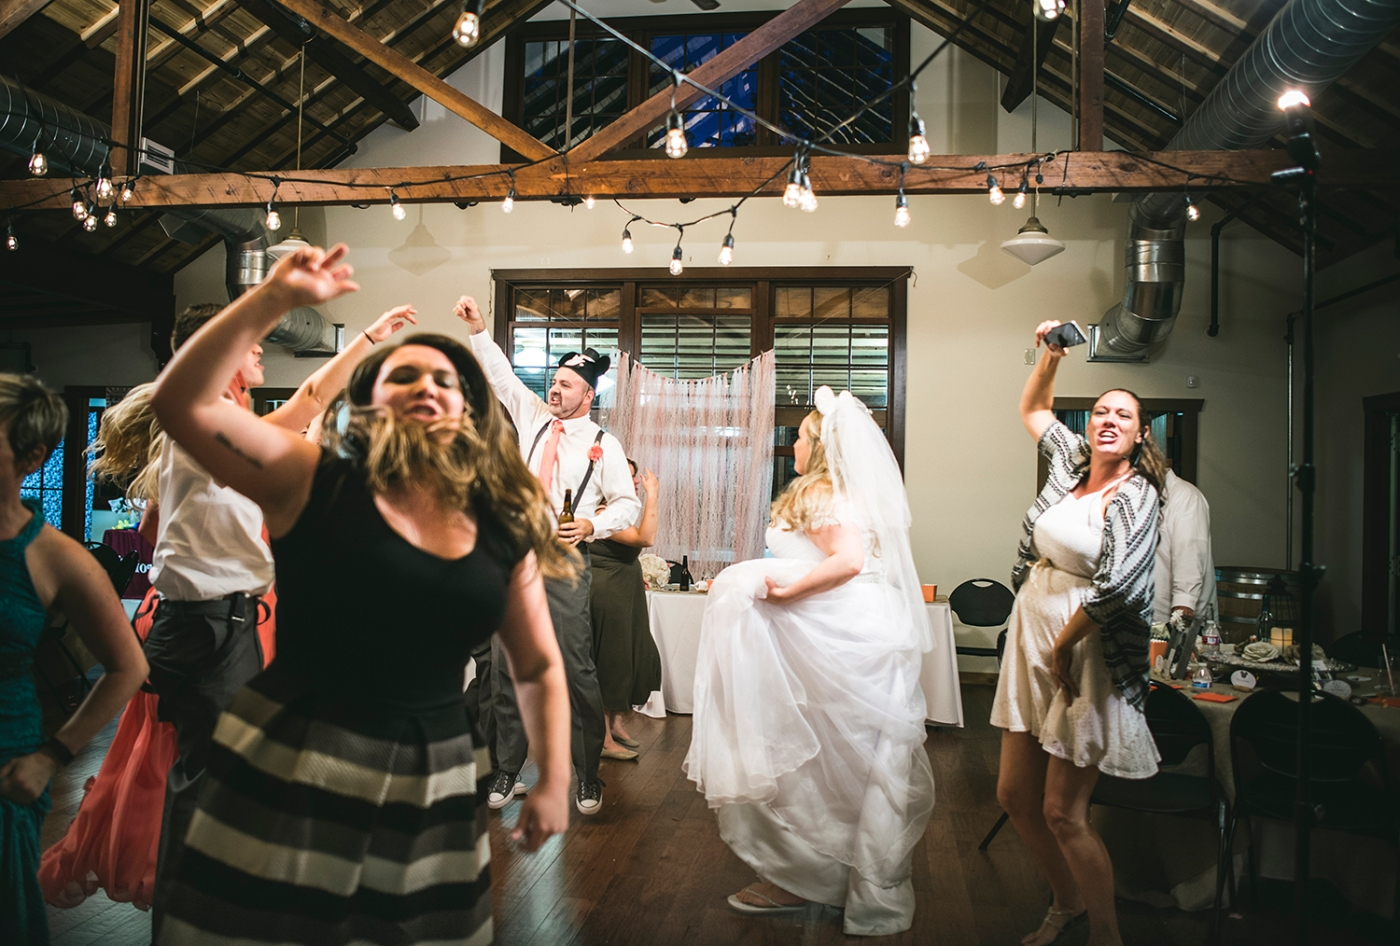 Jane_S_Seattle_photography_Kadie_and_Steve_2016_Des_Moines_Marina_Wedding_DSC_2730